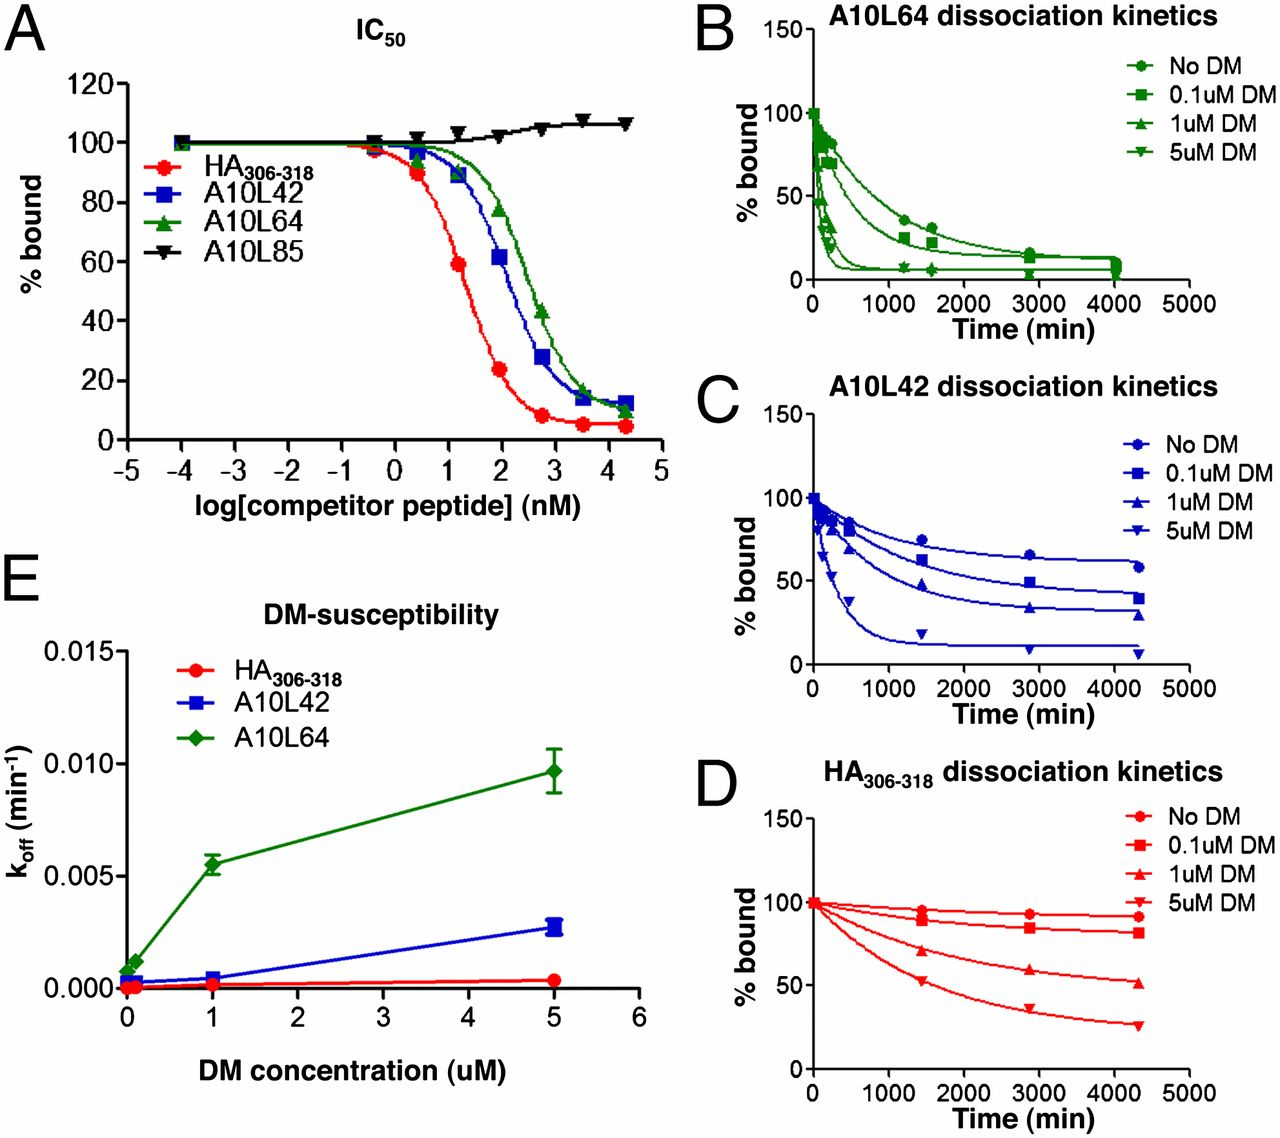 HLA-DM Constrains Epitope Selection in the Human CD4 T Cell Response